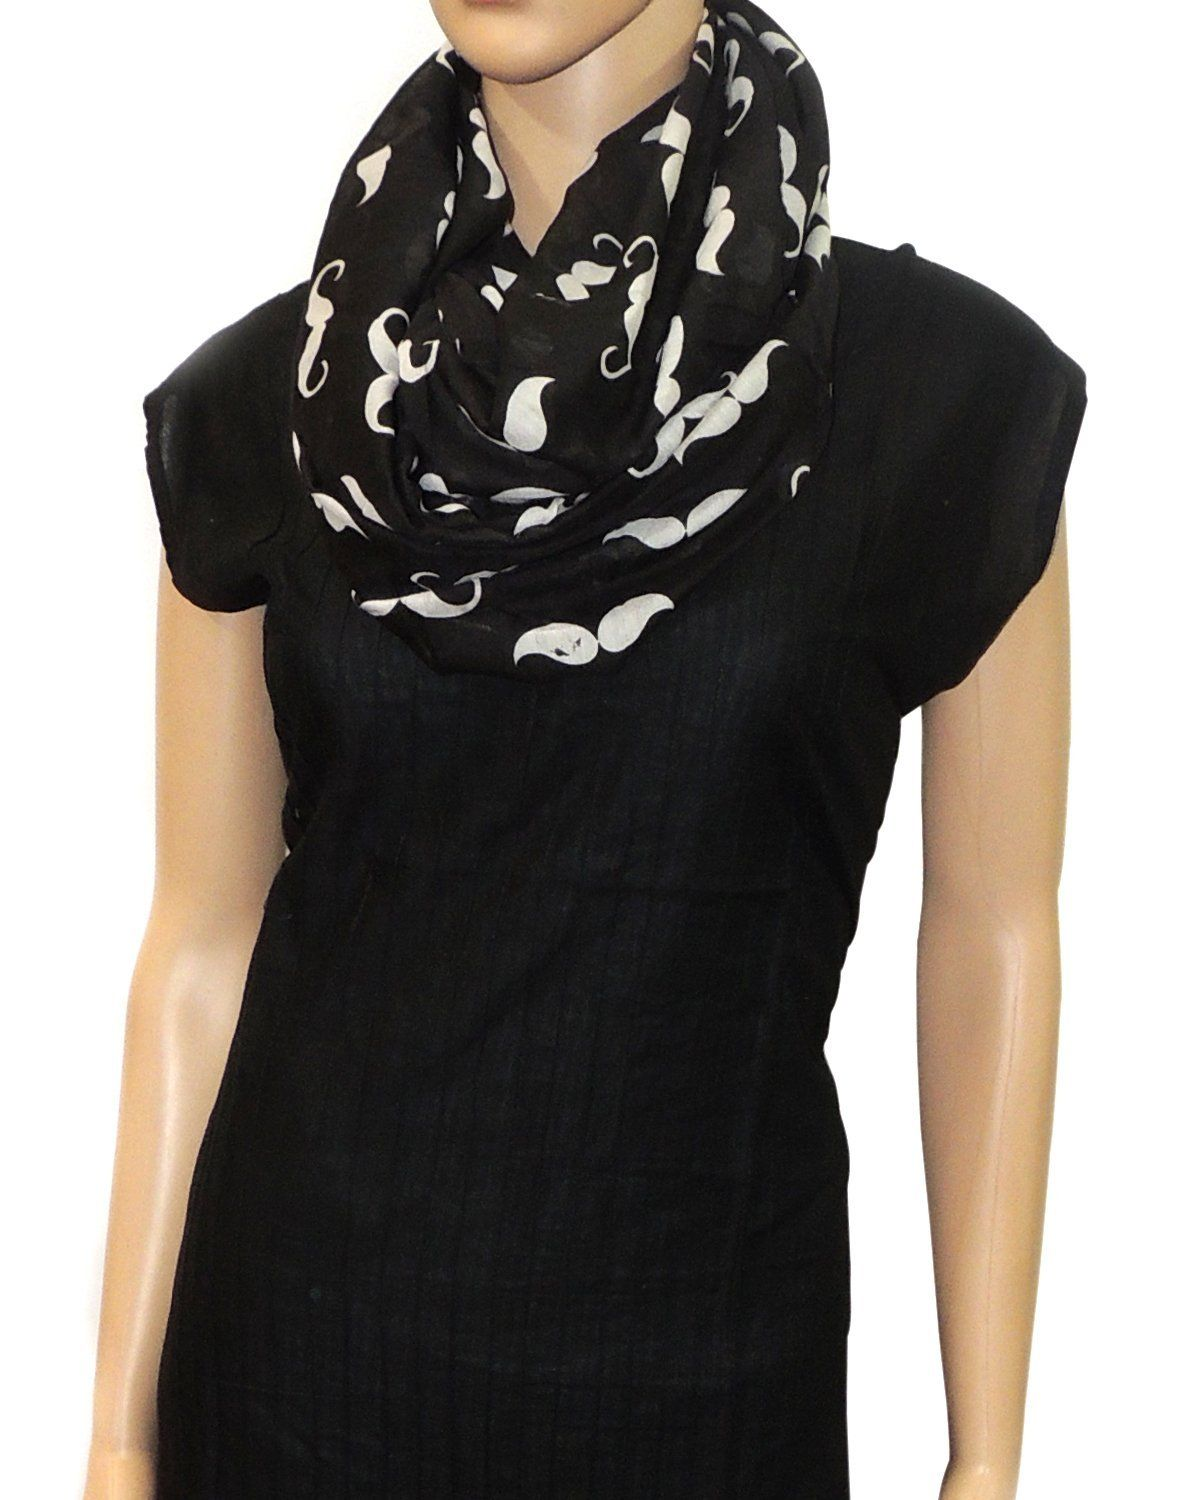 d32ec3b9f22087 INDIAN FASHION GURU, Infinity Stole, polycotton, moustache print, black,  white, casual, trendy, reasonable: Amazon.in: Clothing & Accessories